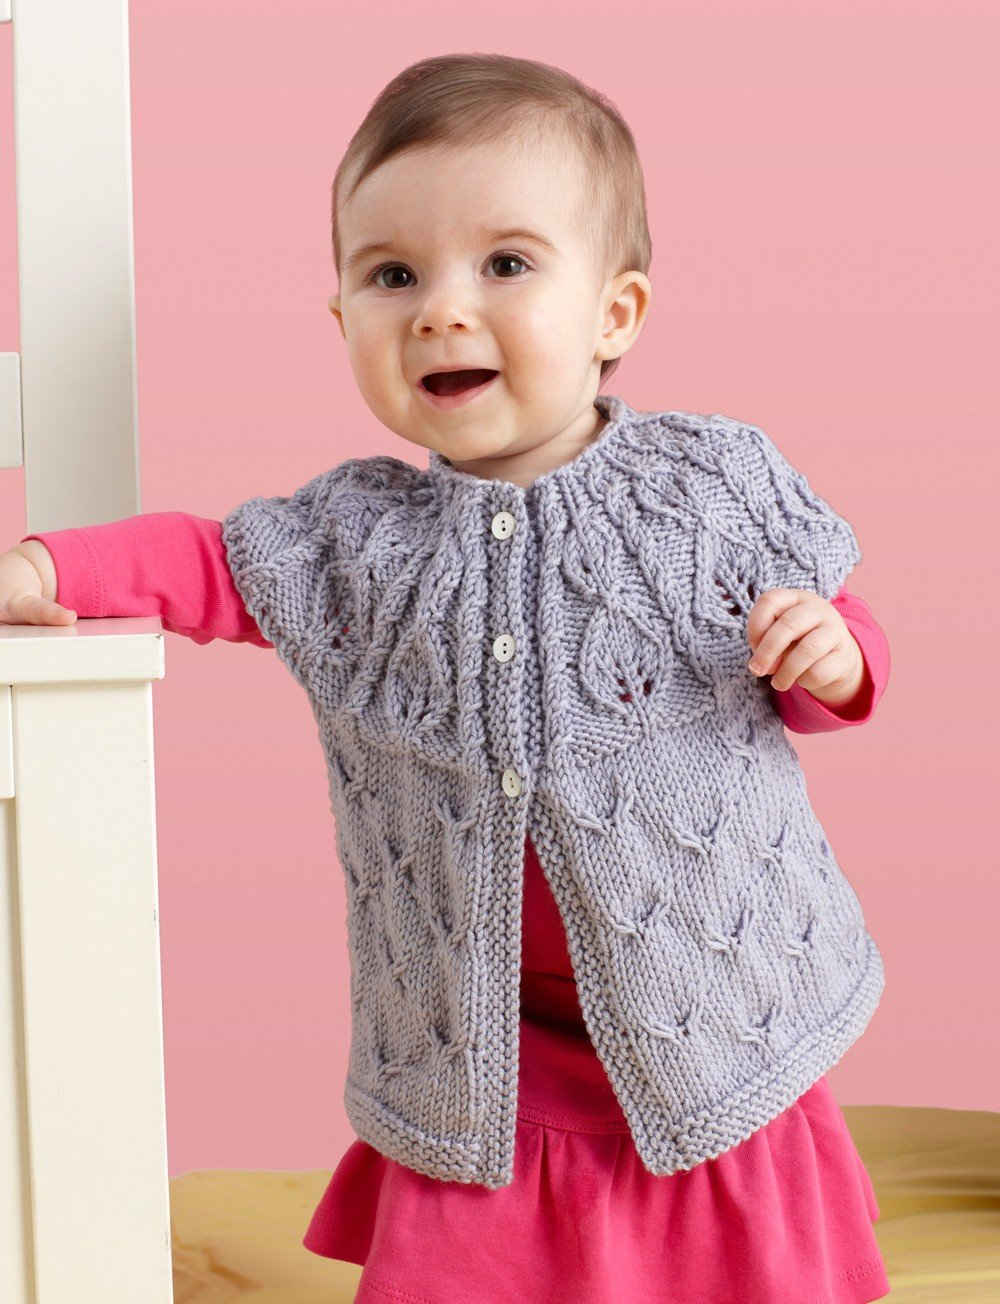 Knitting Pattern Baby Cardigan Free : 10+ Free Baby Sweater Knitting Patterns